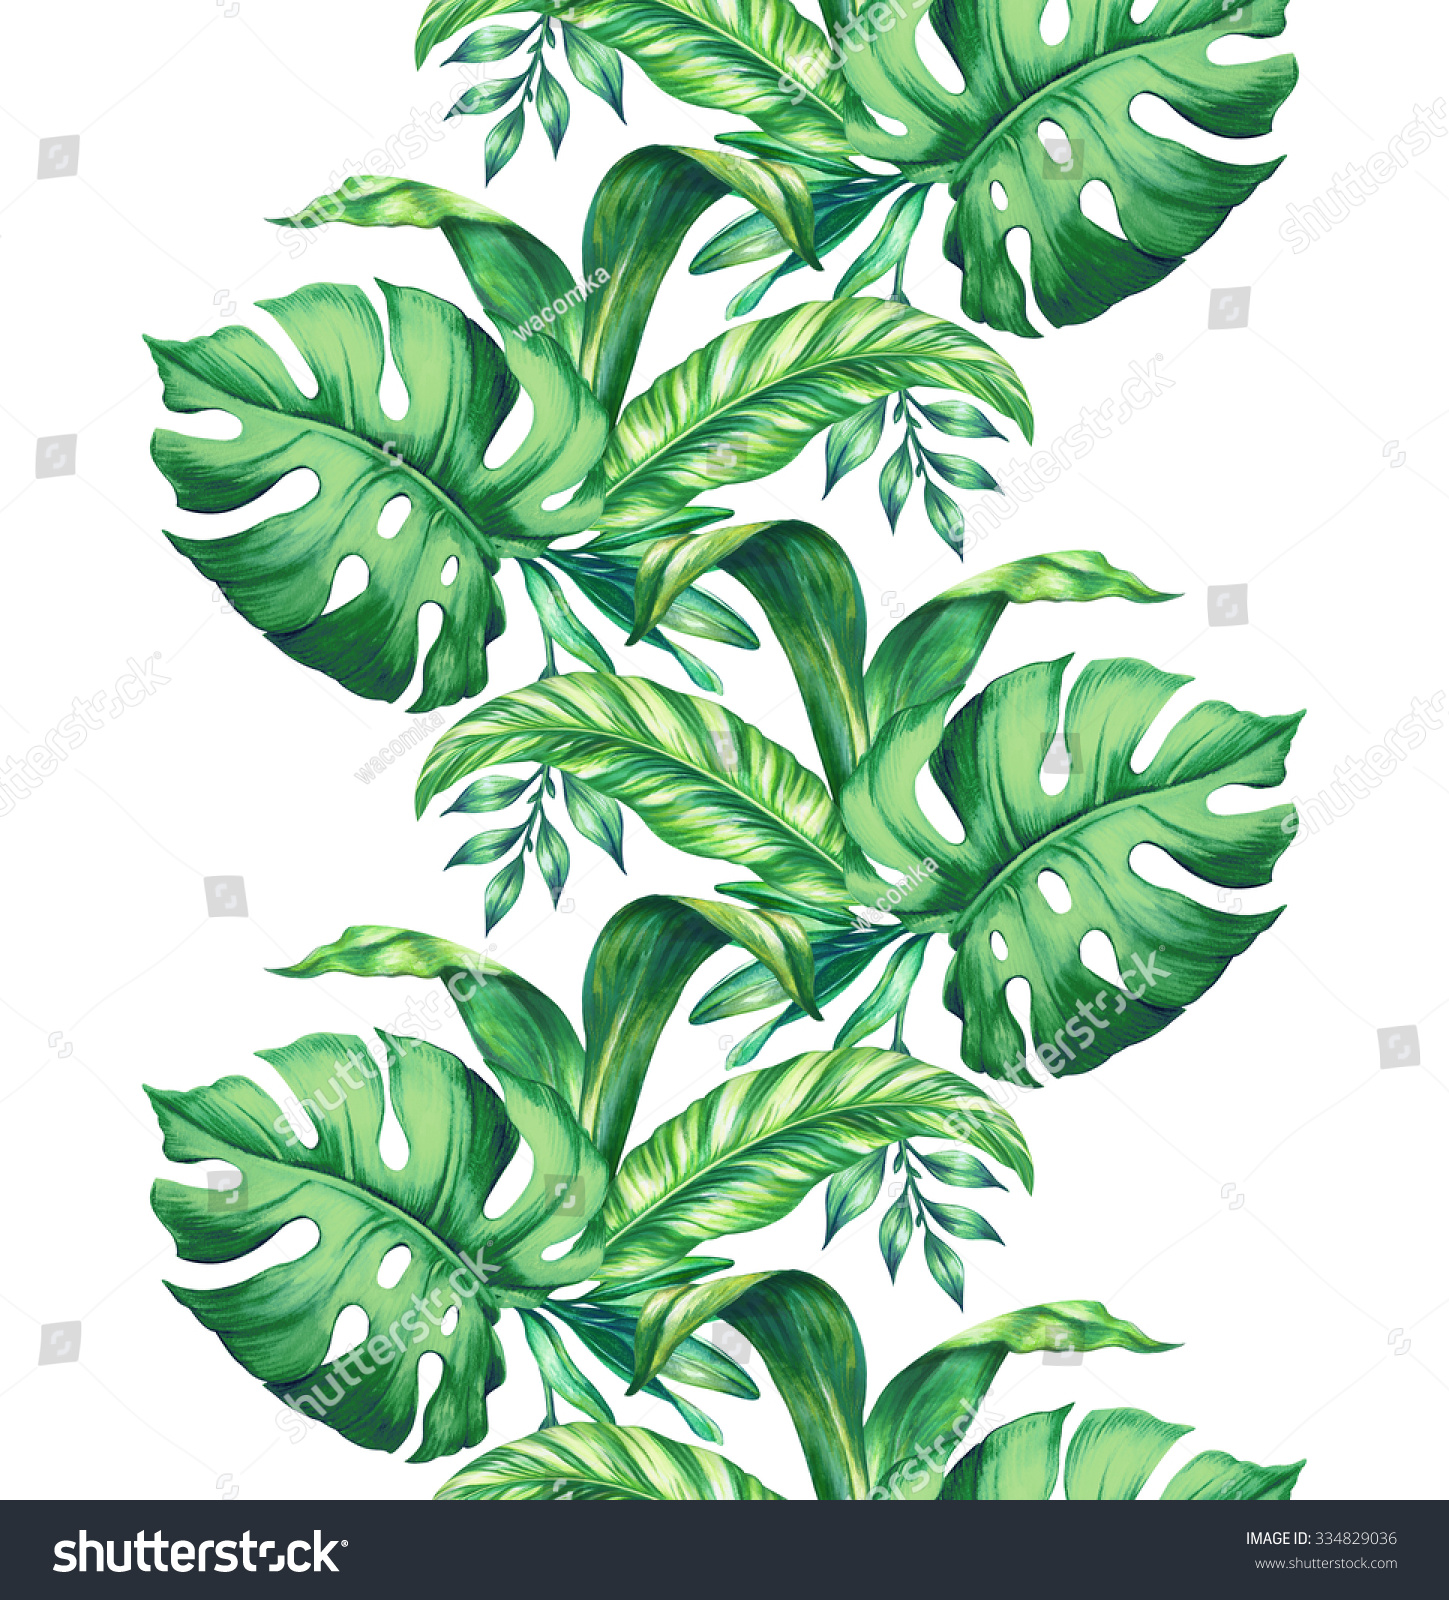 Seamless Border Watercolor Tropical Green Leaves Stock Illustration 334829036 Find images of tropical leaves. https www shutterstock com image illustration seamless border watercolor tropical green leaves 334829036